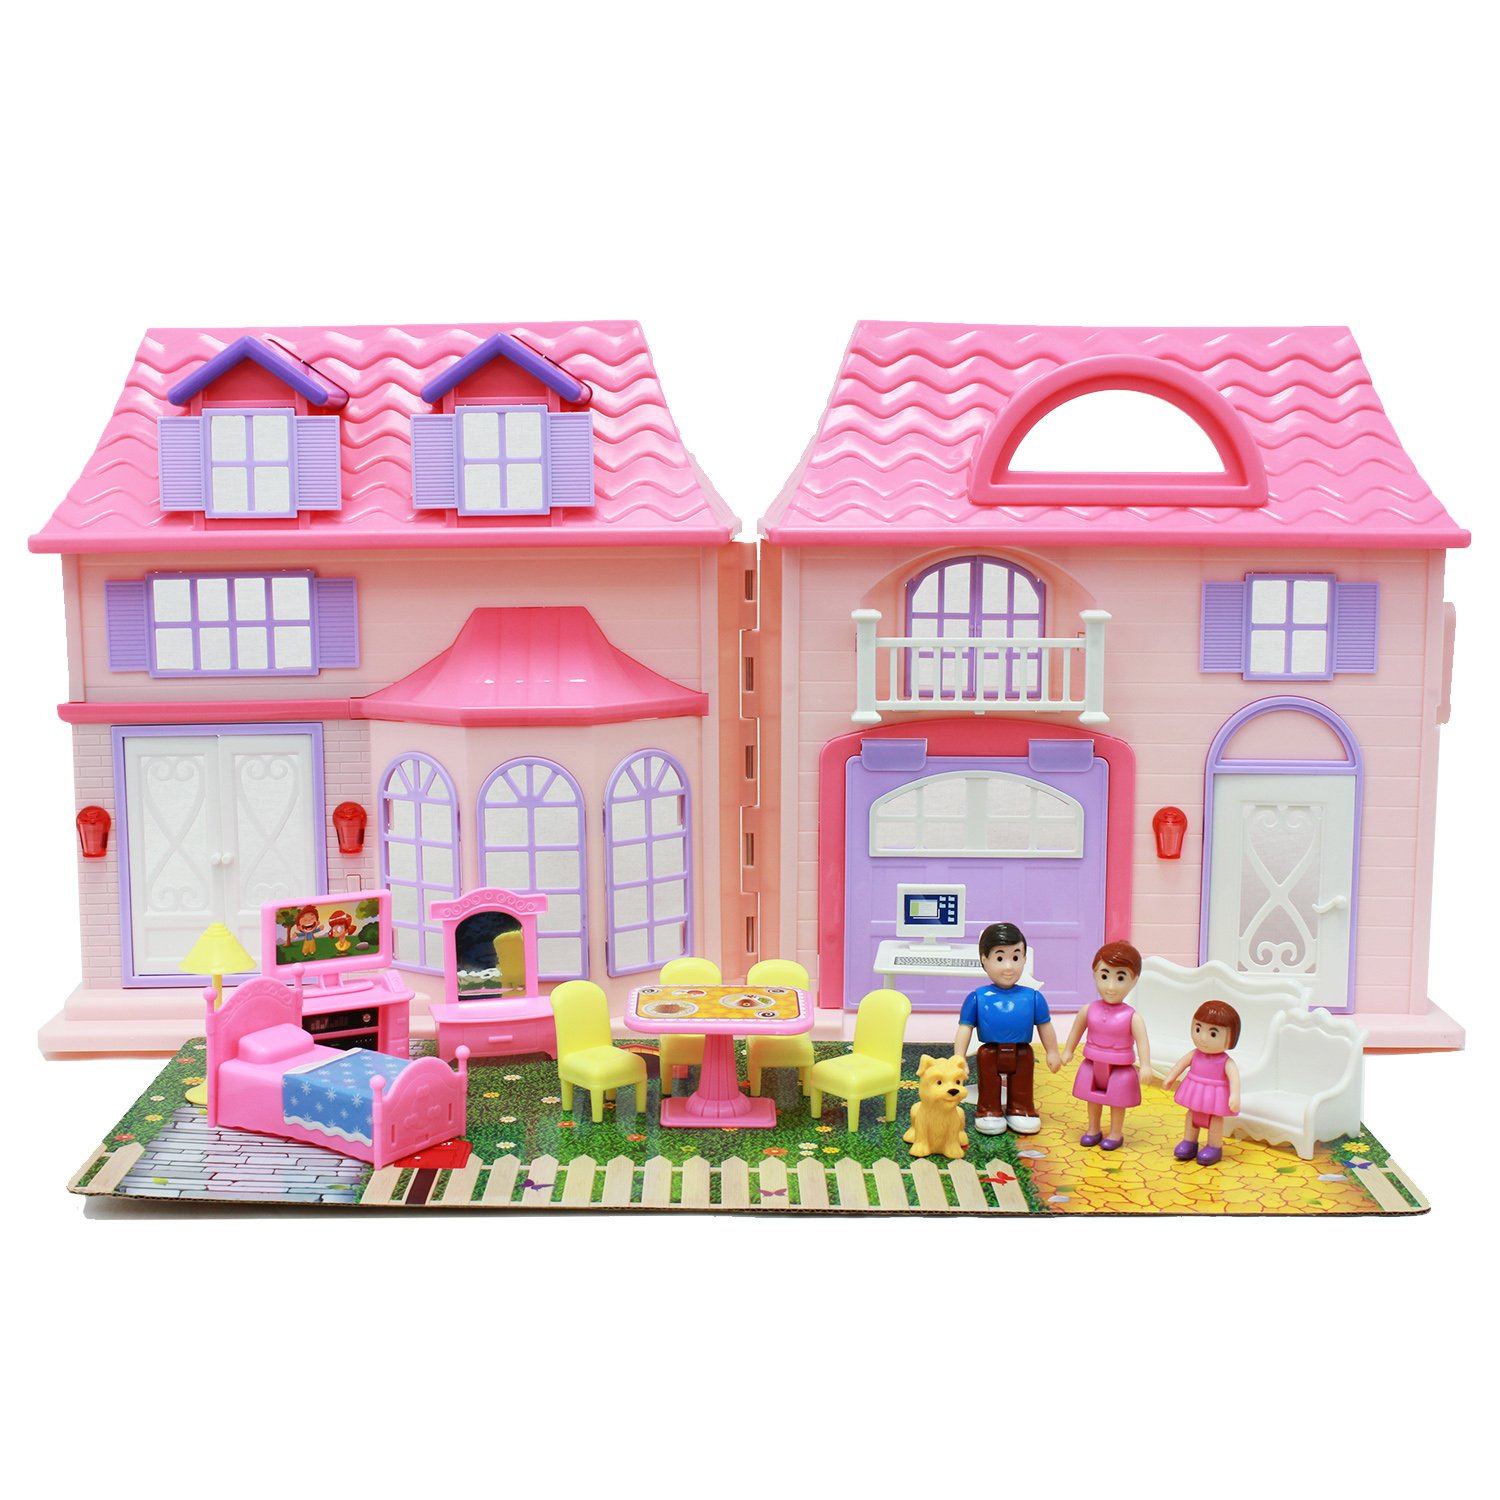 Toys For Kids 4 5 : Toys for girls doll house kids toddler